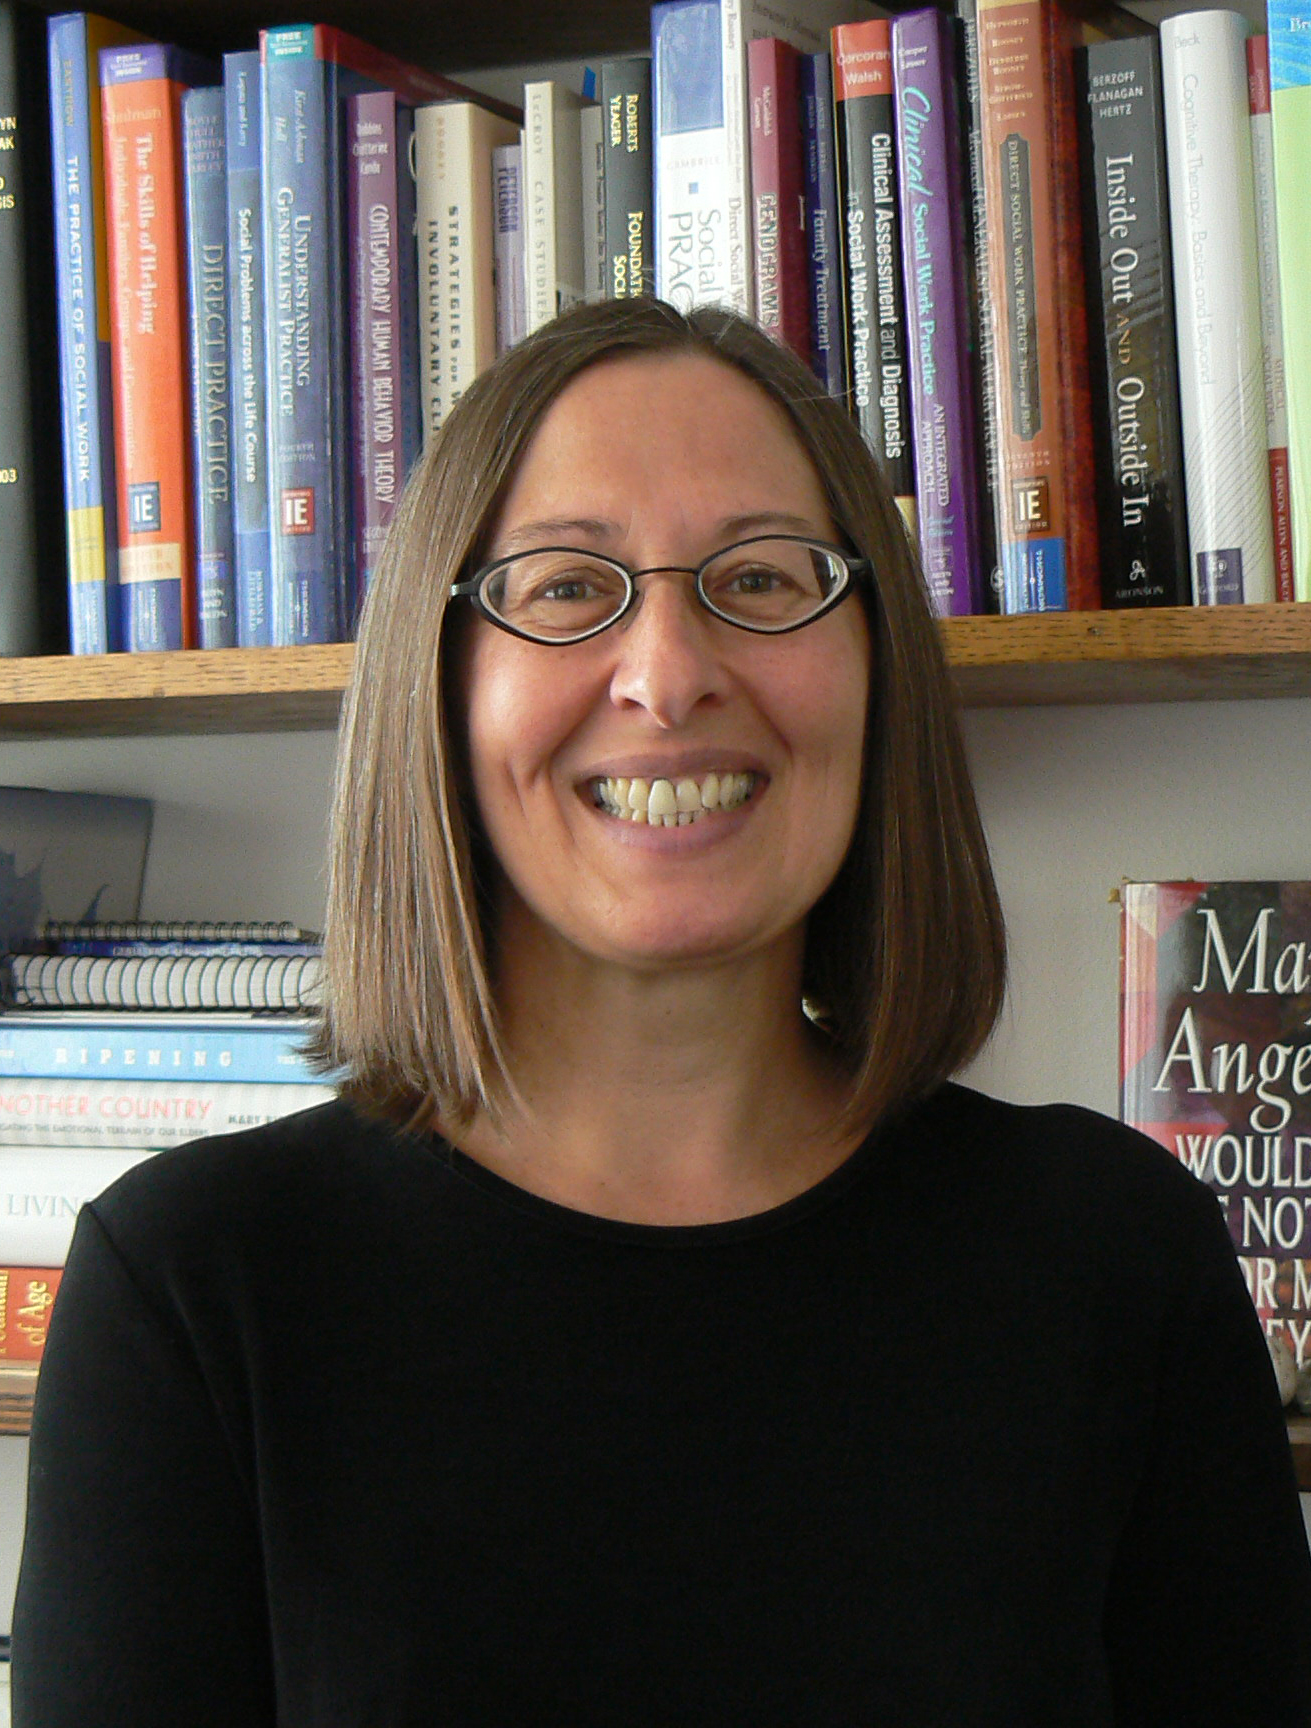 Marilyn Luptak, associate professor of social work, will moderate a panel on The New Expectations for Health Care during a White House Briefing Sept. 25, 2013.